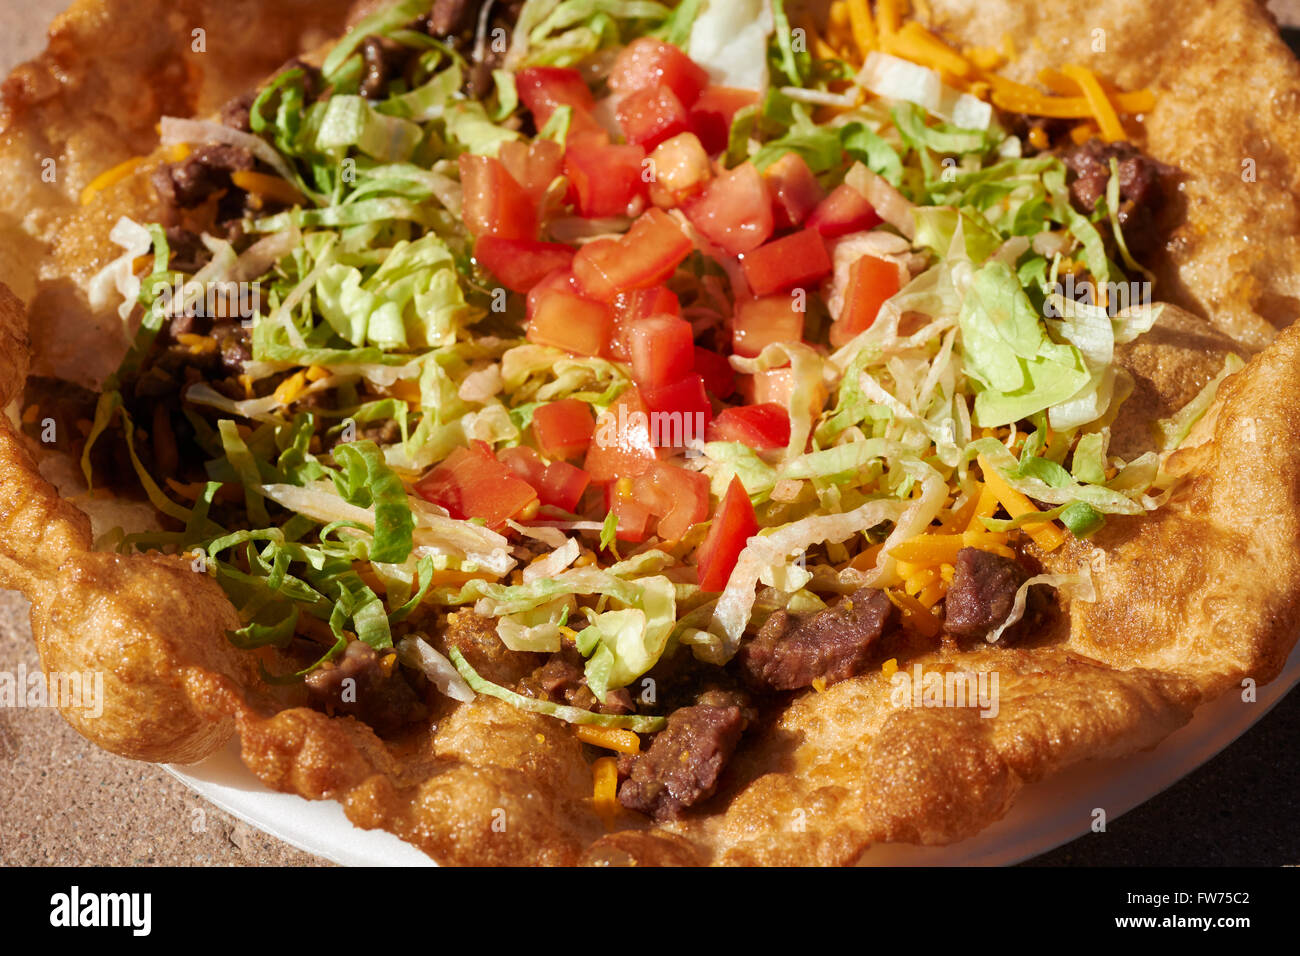 Green chile frybread a modern native american food specialty stock green chile frybread a modern native american food specialty forumfinder Gallery